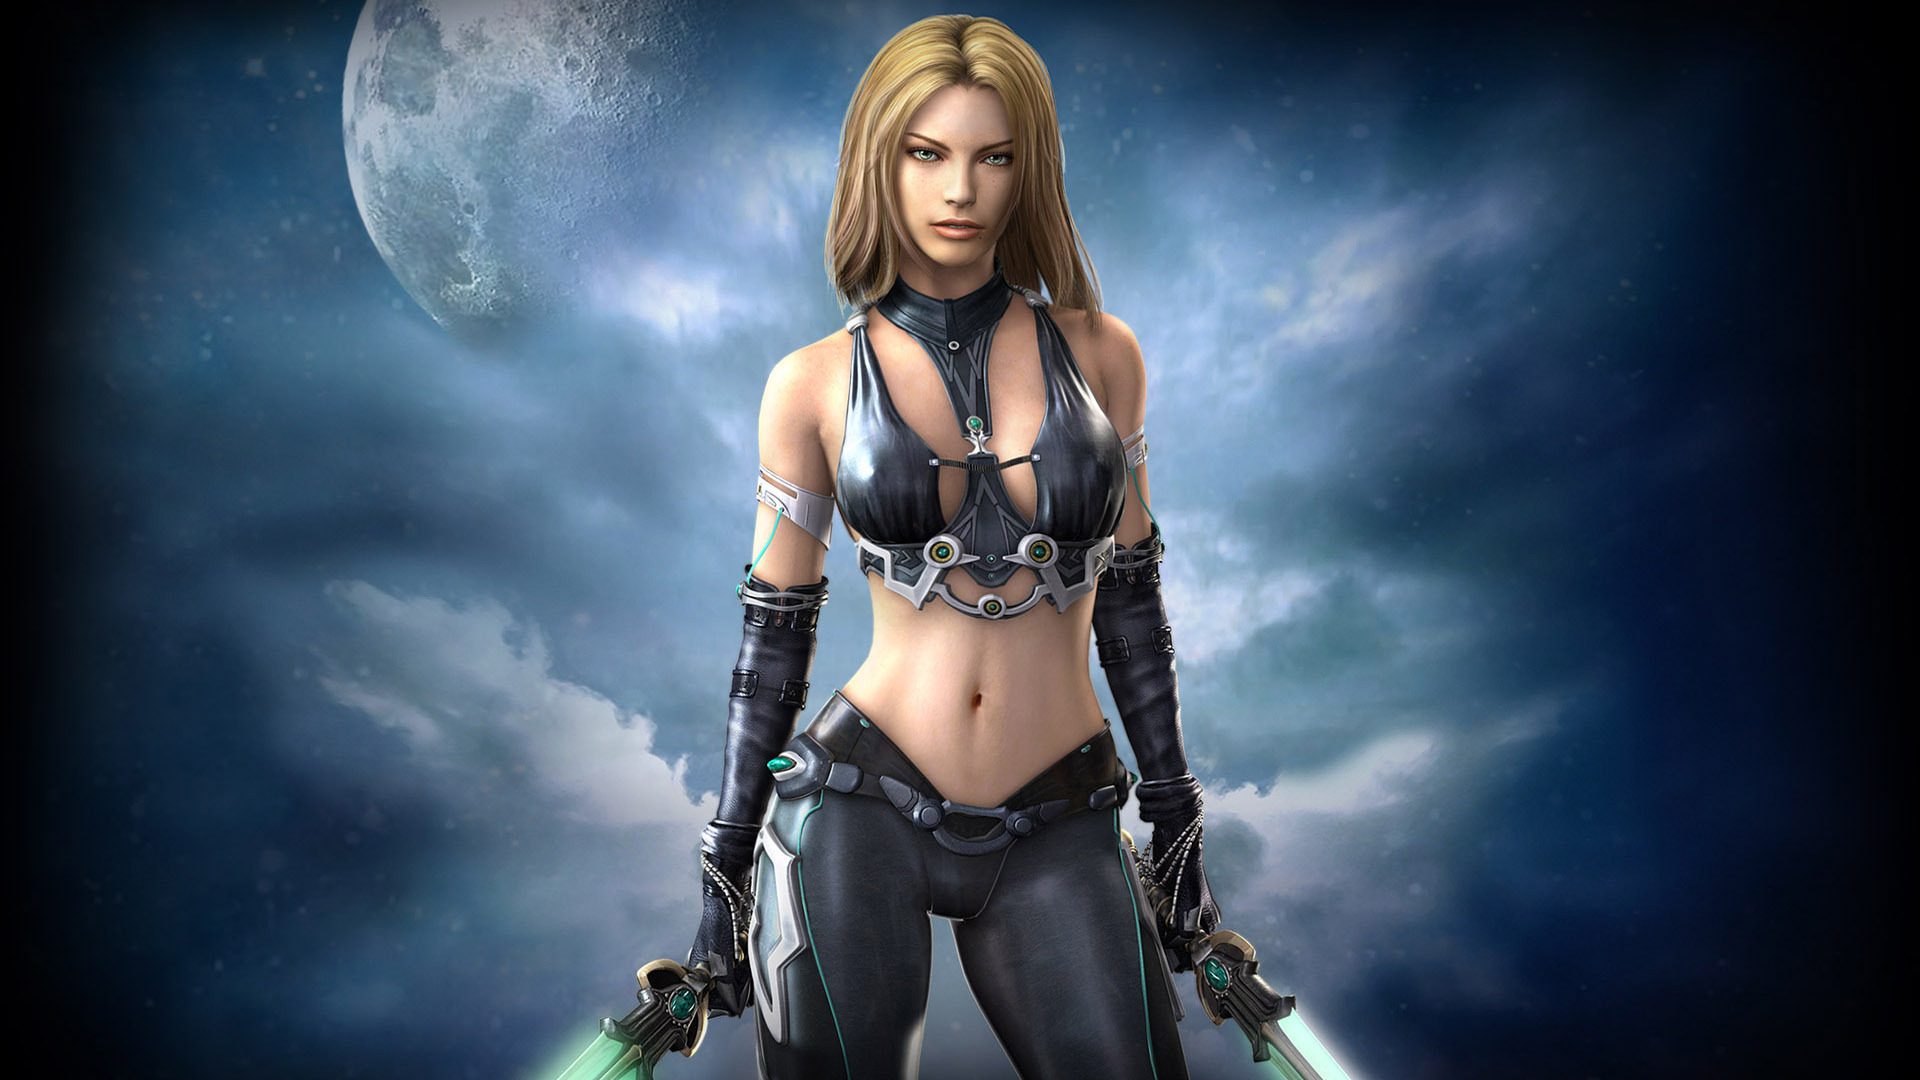 Women warrior full hd wallpaper and background image 1920x1080 fantasy women warrior fantasy warrior moon woman wallpaper voltagebd